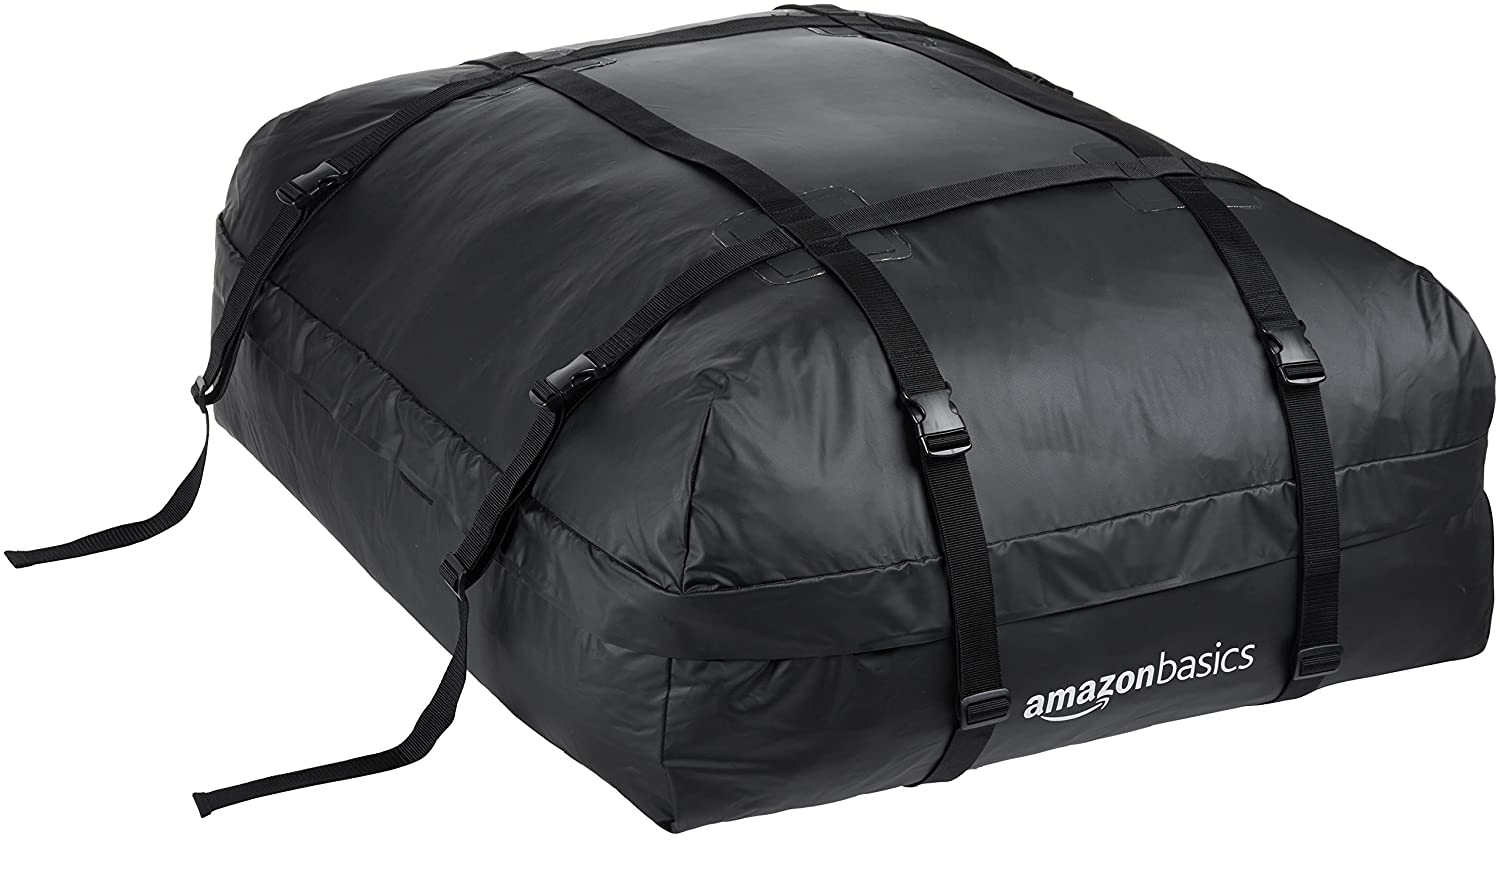 KEEPER 07204 Black Premium Waterproof Cargo Bag - photo